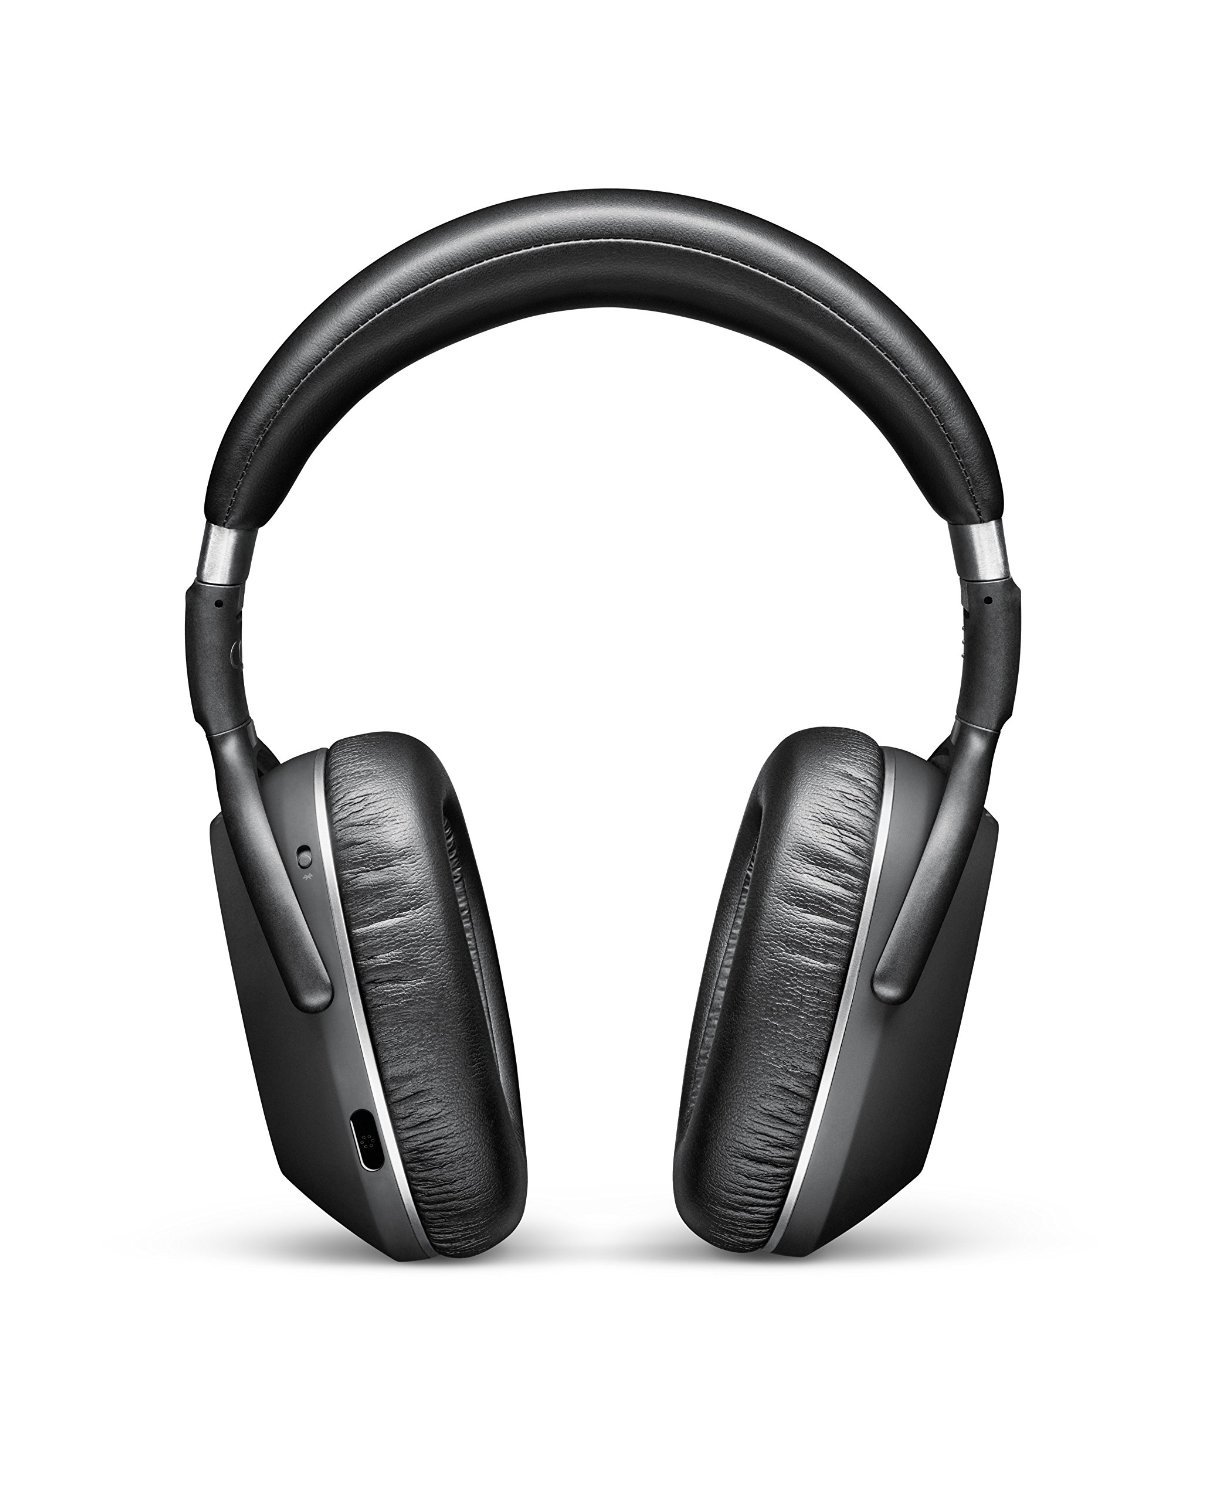 Sennheiser PXC 550 Wireless Noise Canceling